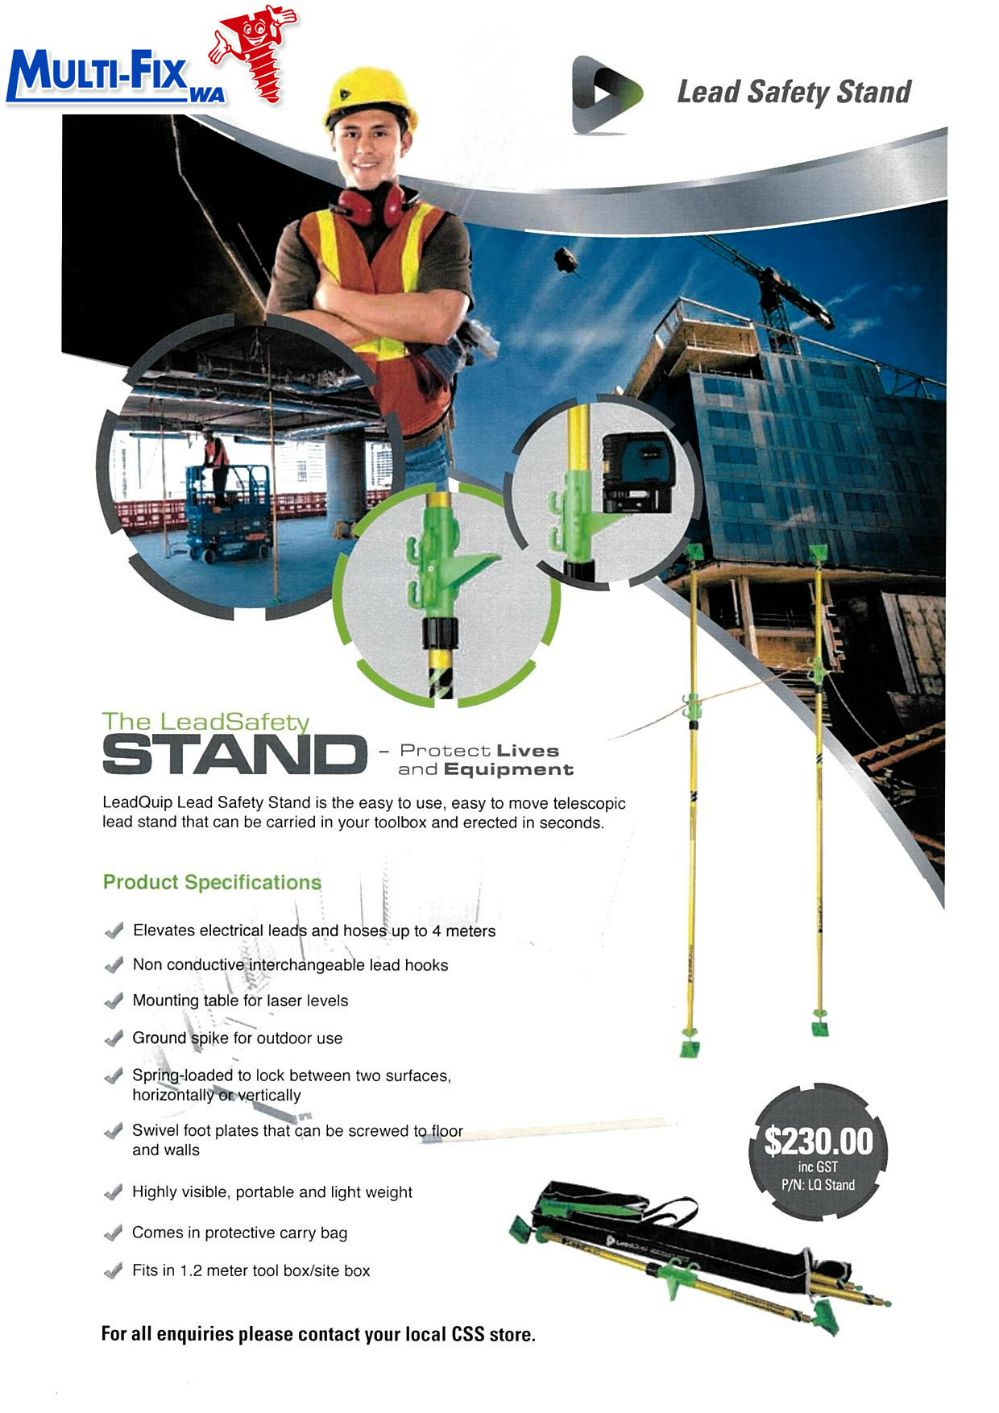 Lead Safety Stand